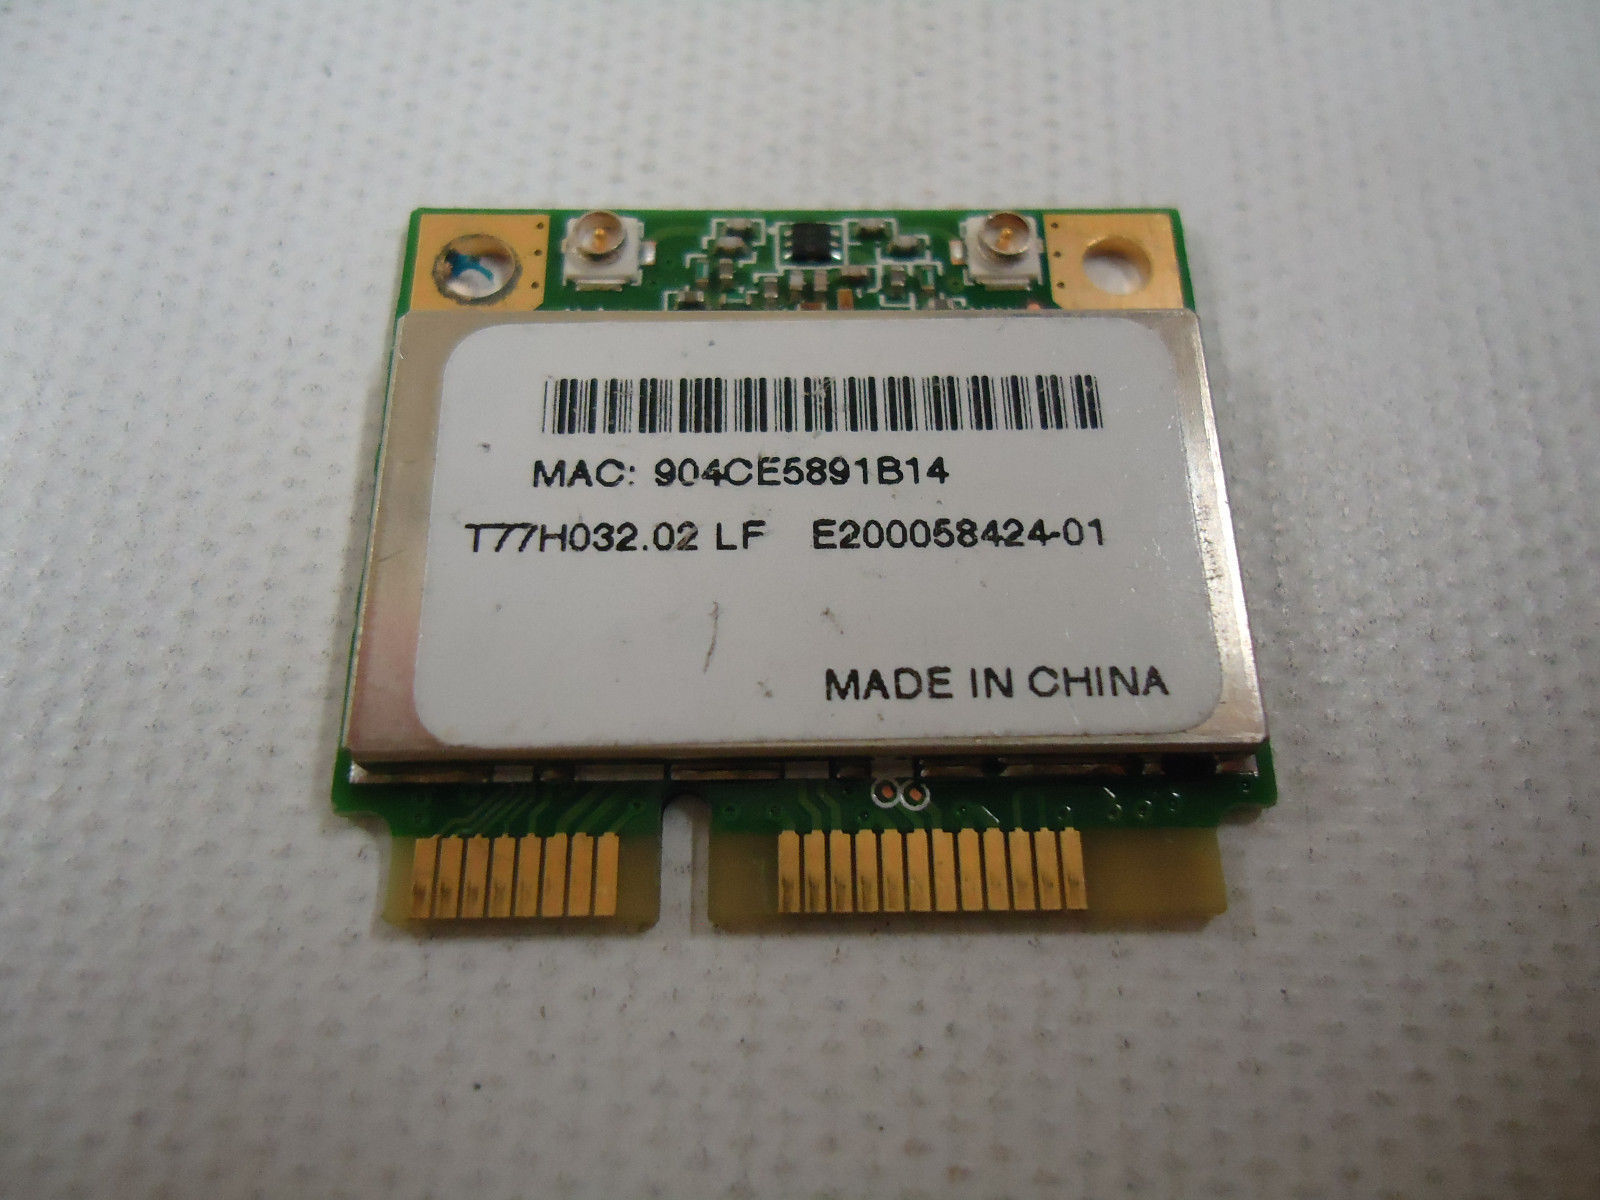 Acer T77H032.02 AR5BHB63 Aspire One 751H Wifi Mini PCI-E 802.11ABG Wireless Card